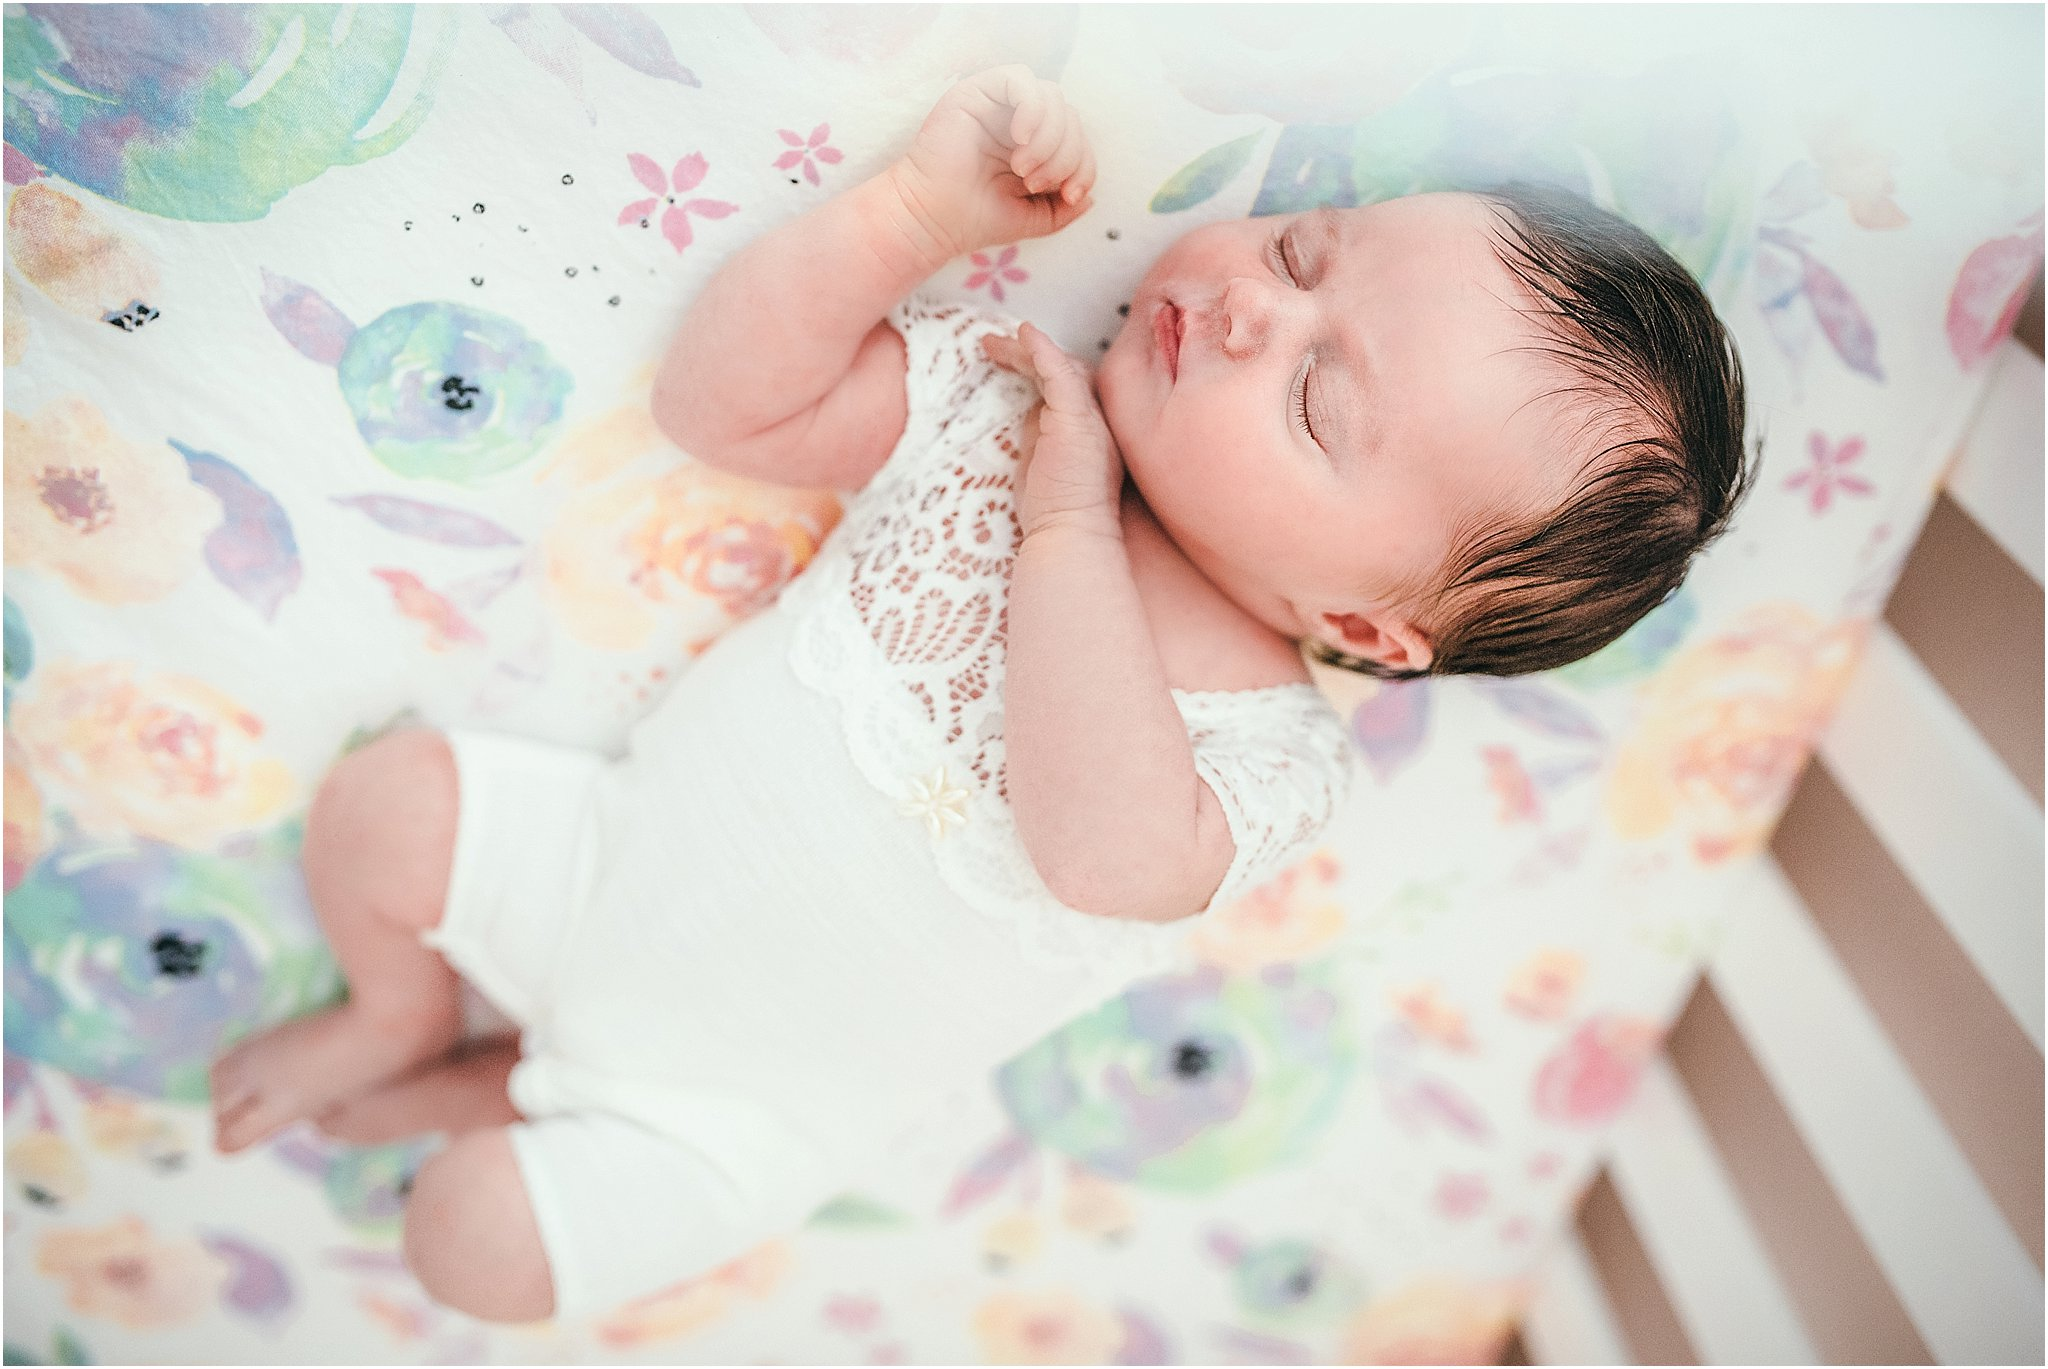 Ashley_Rogers_Photography_Orlando_Non-Posed_Newborn_Family_Lifestyle_Photographer_0419.jpg